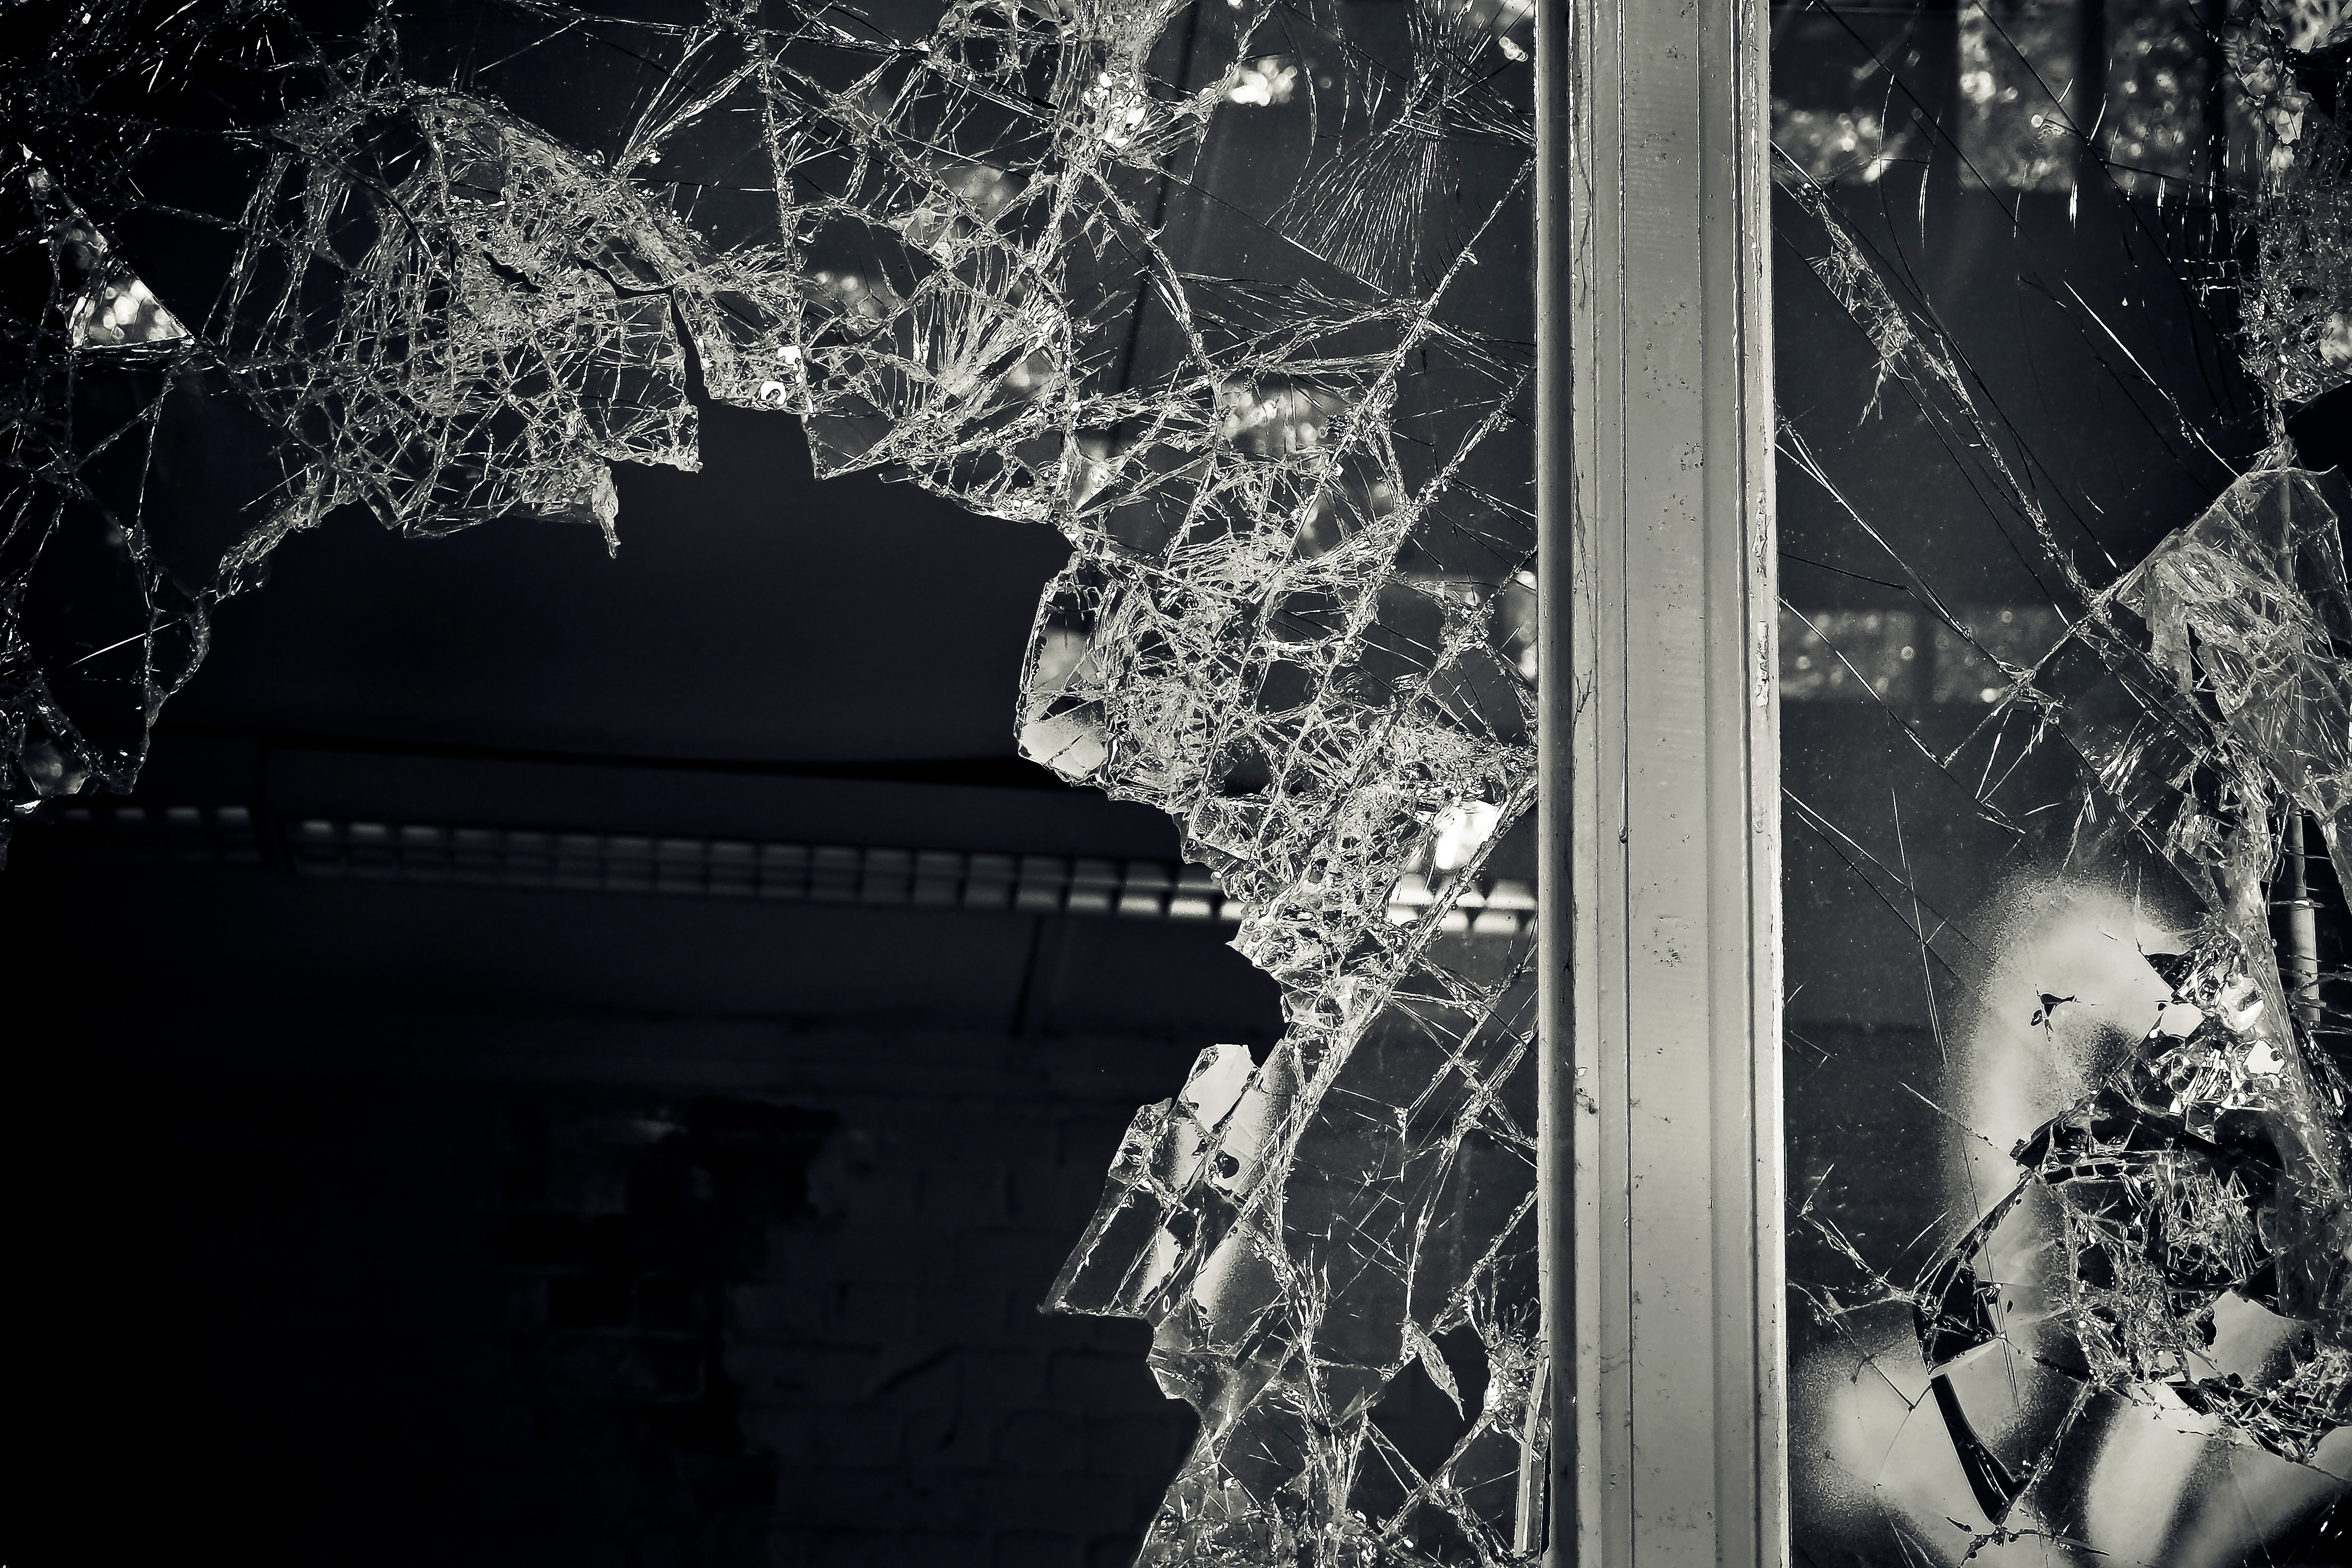 Black and white photo of a broken window